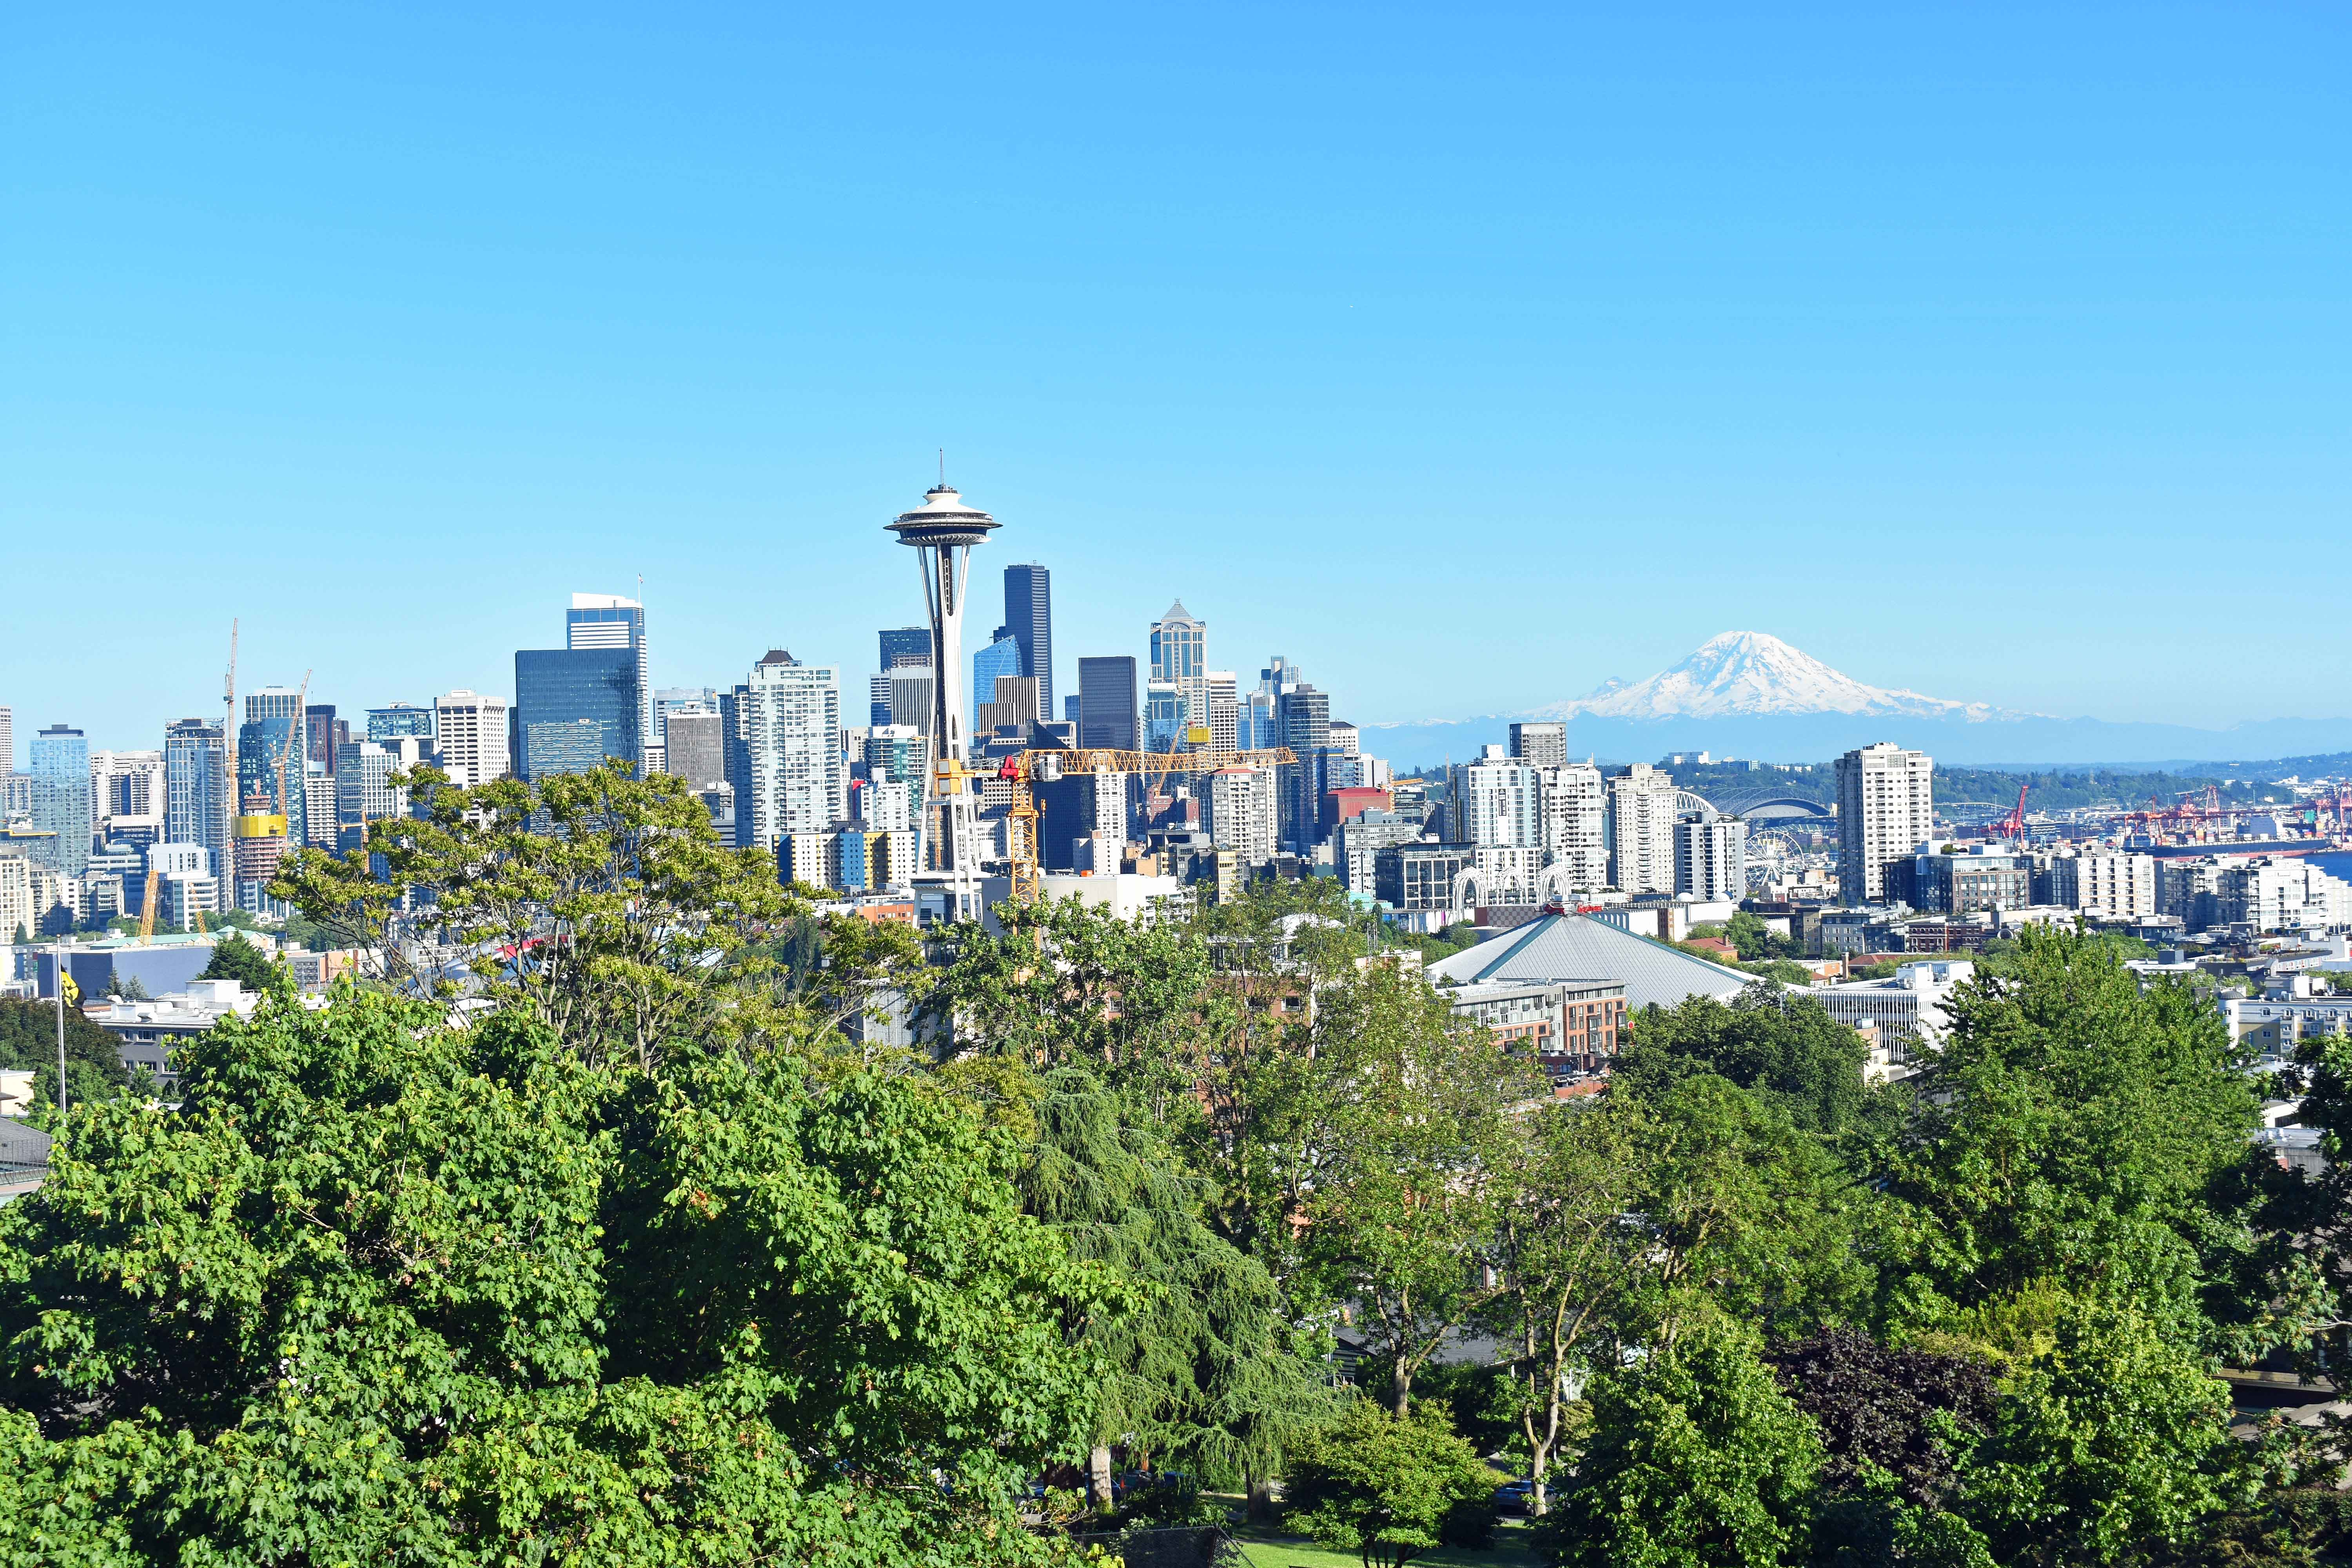 Seattle Space Needle Skyline at Kerry Park. Best Places to Eat and See in Seattle. The most popular spots to visit and the best restaurants. Tips on the best places to see in Seattle Washington. www.modernhoney.com